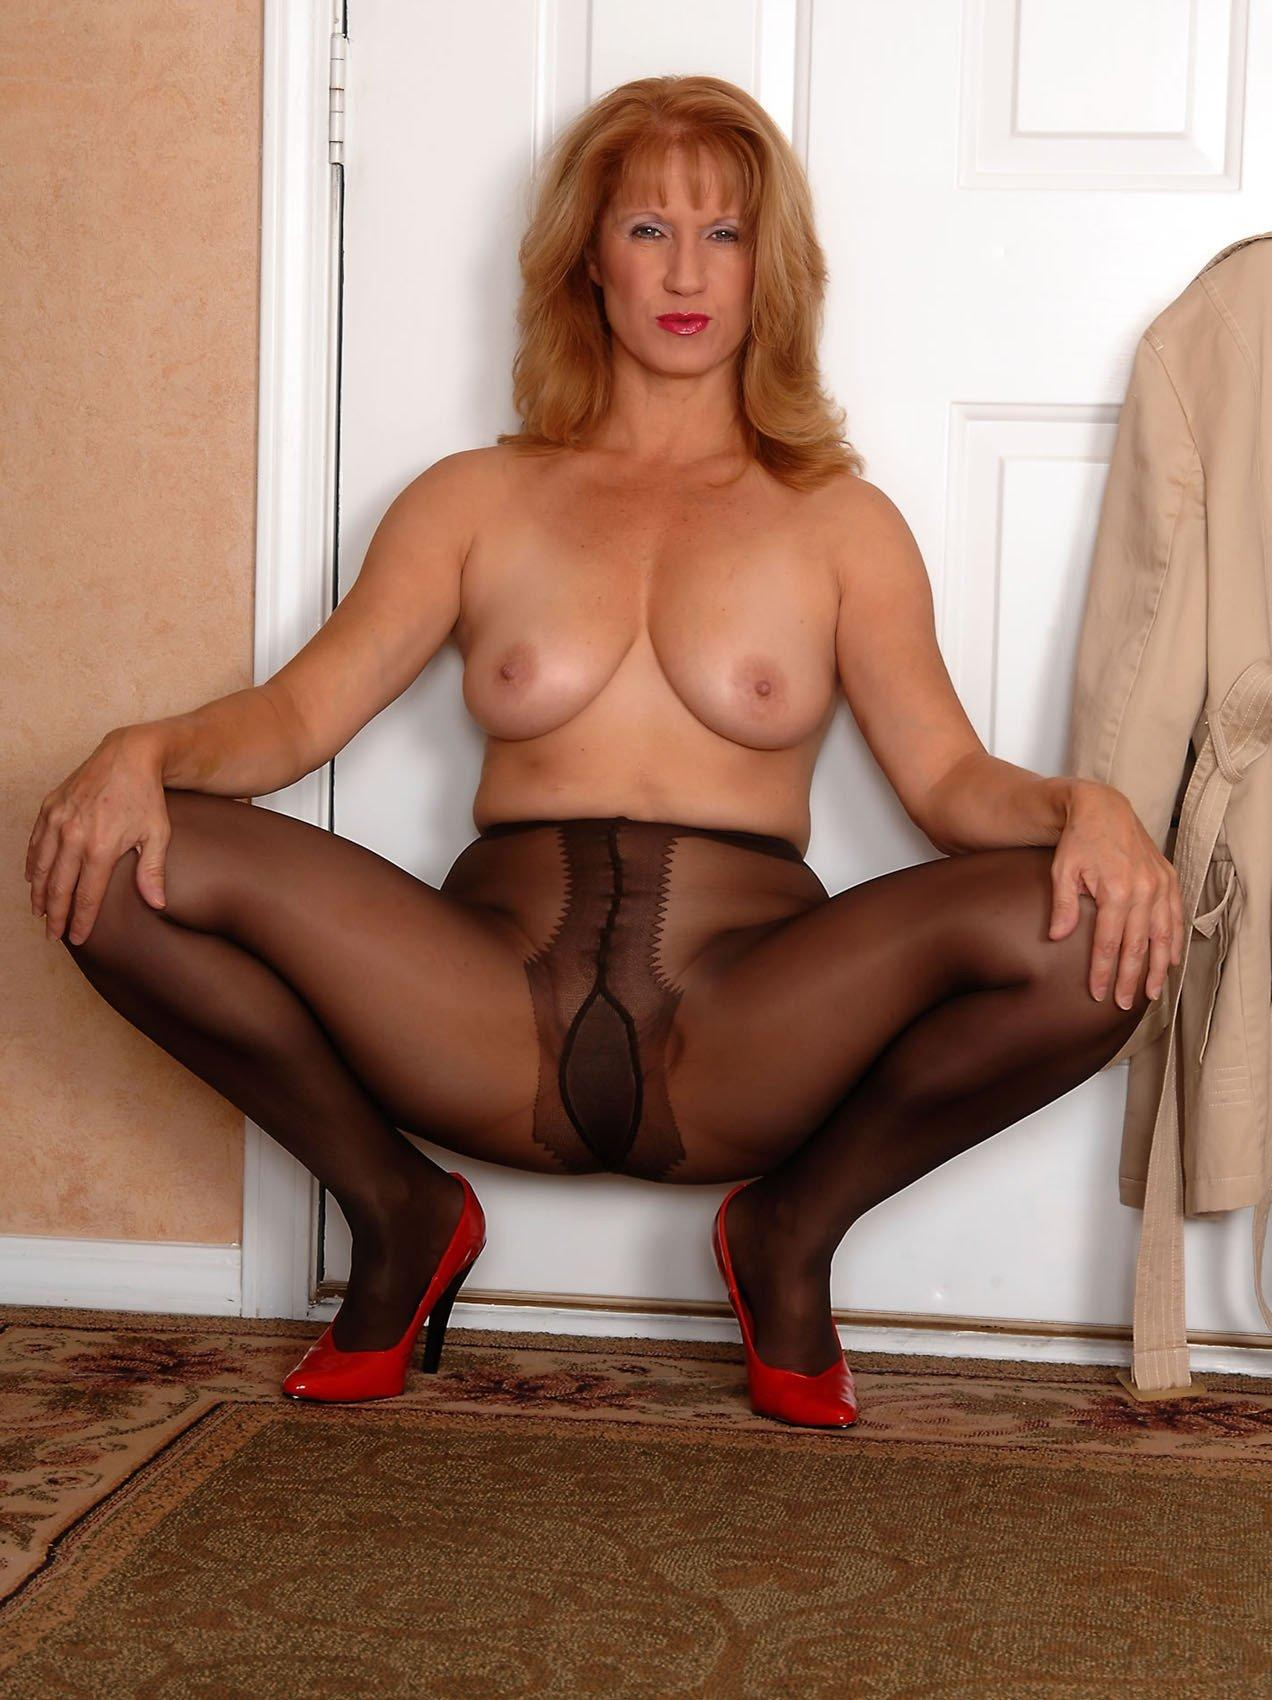 Already far Xxx free mature porn congratulate, simply